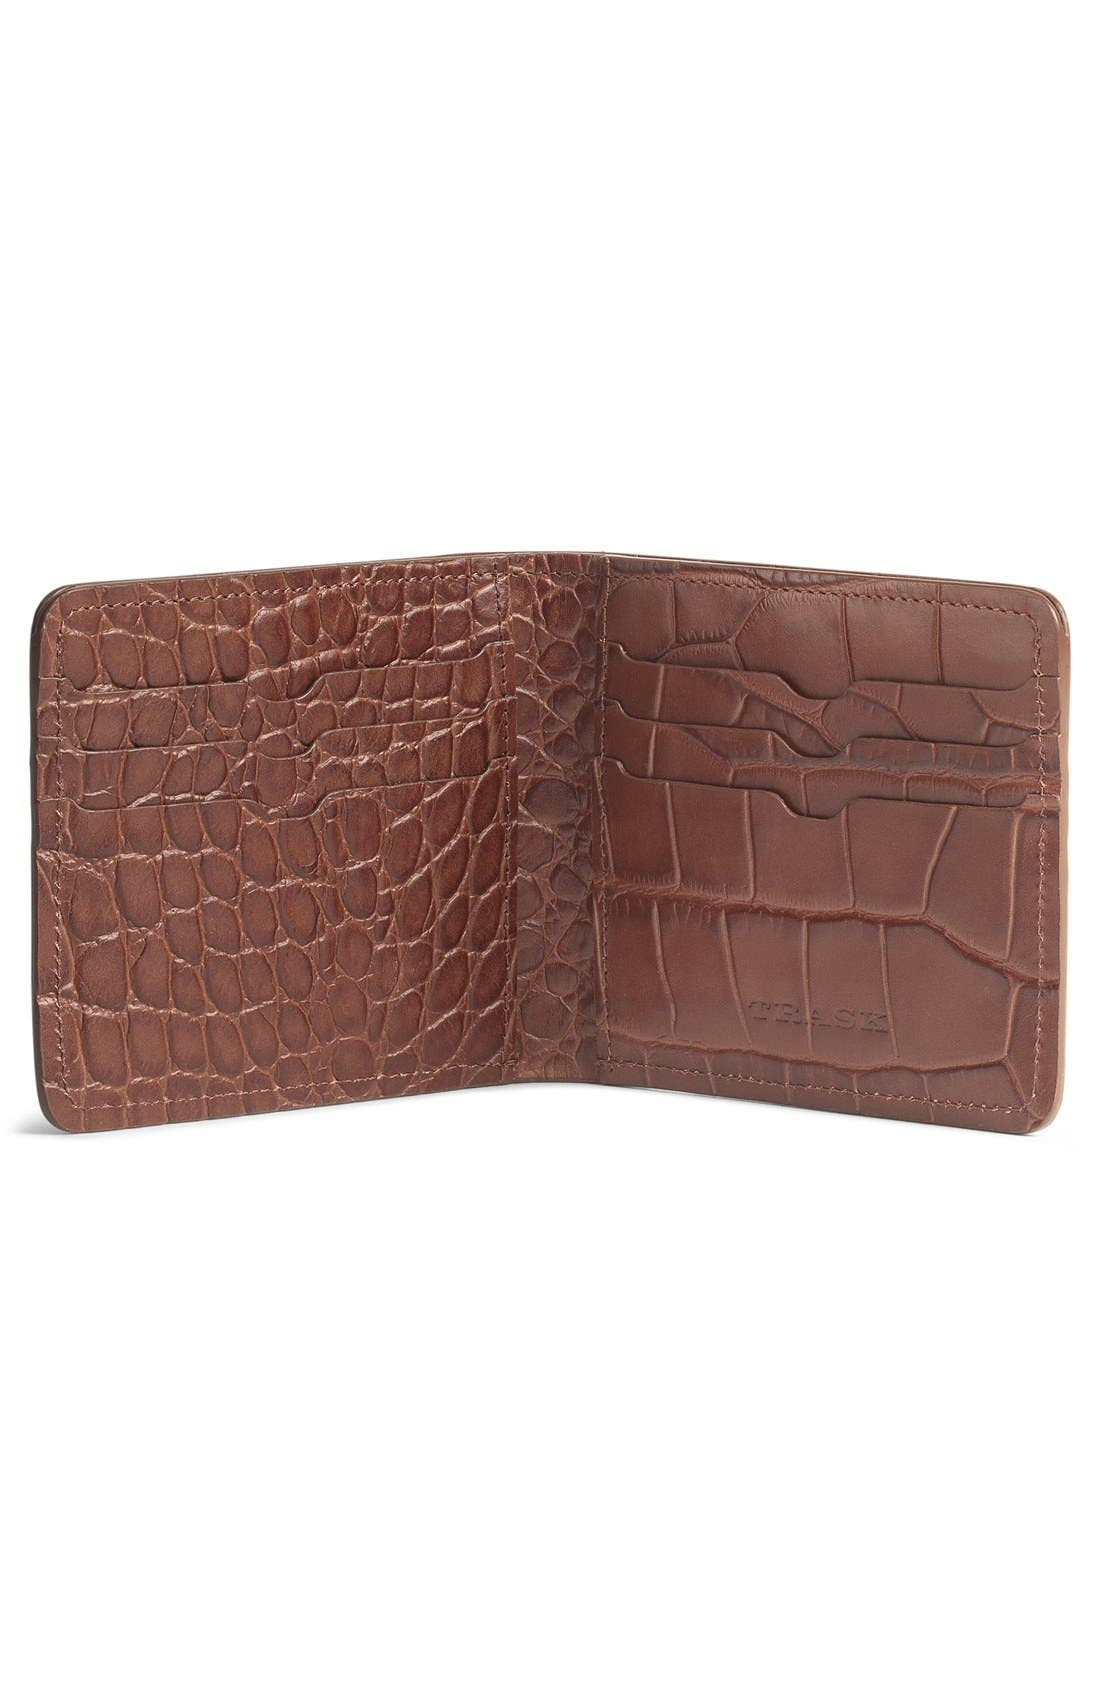 'Jackson' Slimfold Embossed Leather Wallet,                             Alternate thumbnail 4, color,                             SCOTCH